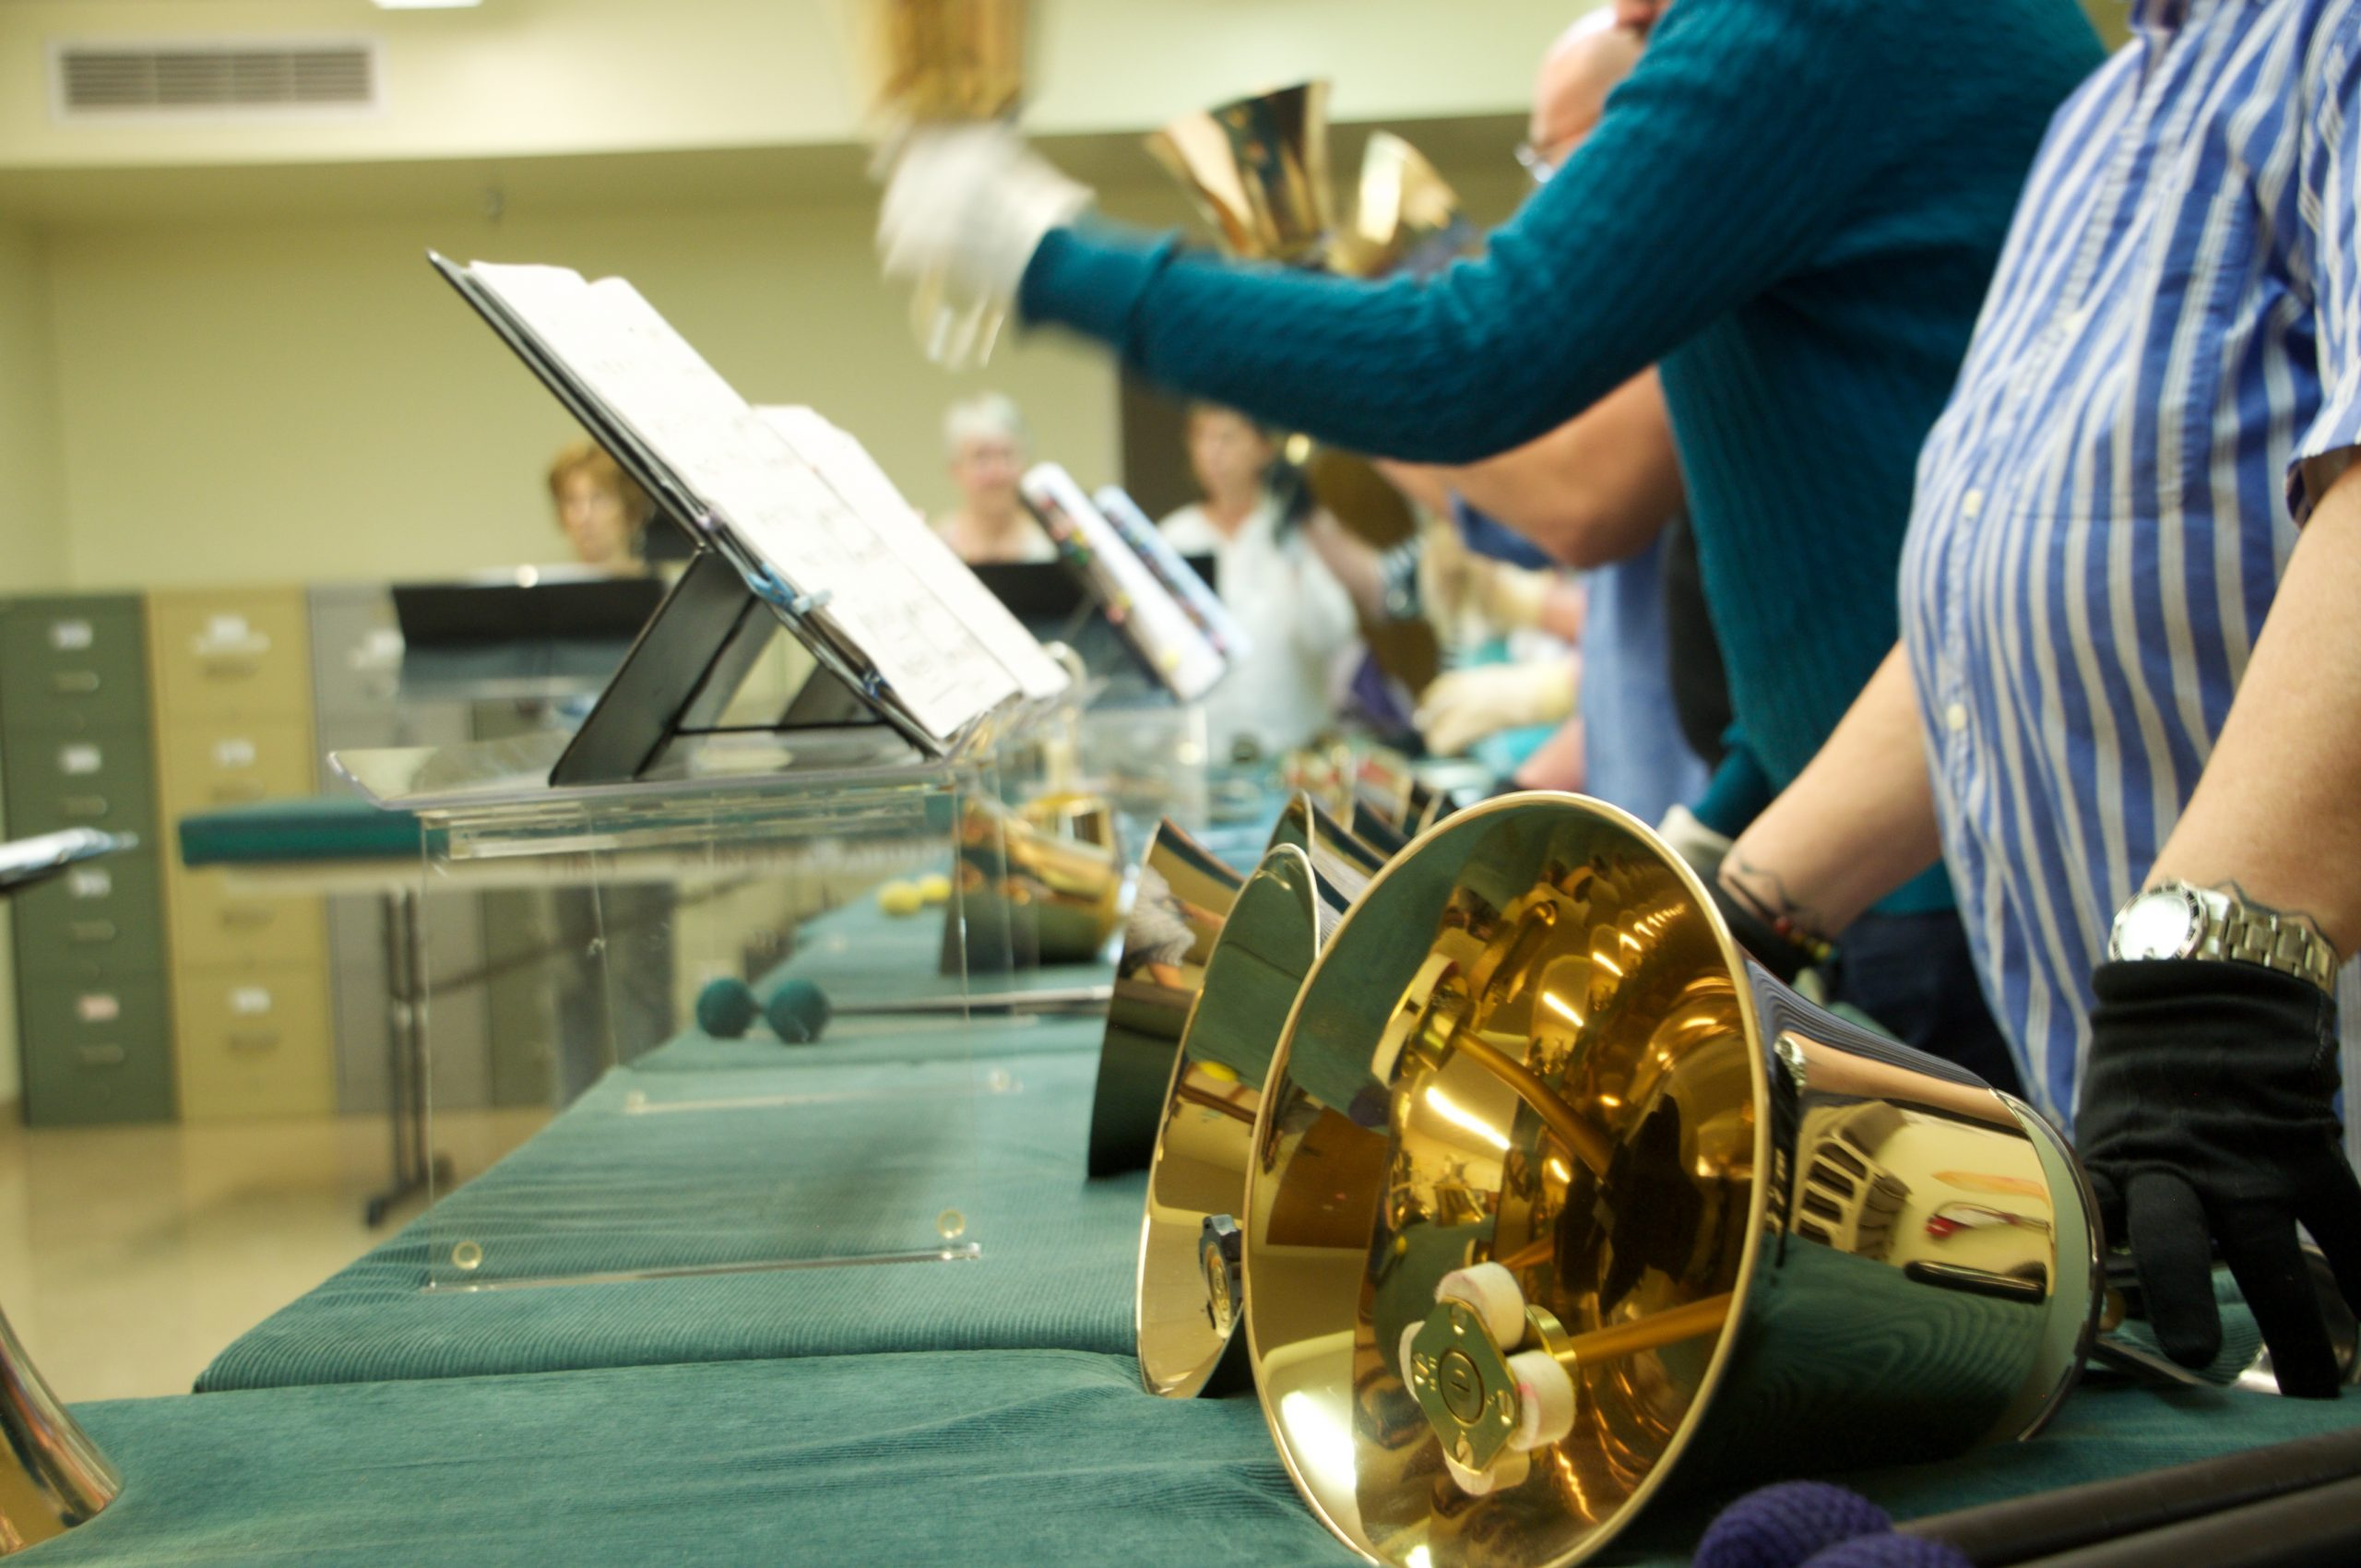 The Bells of St. Vrain at First Congregational Church